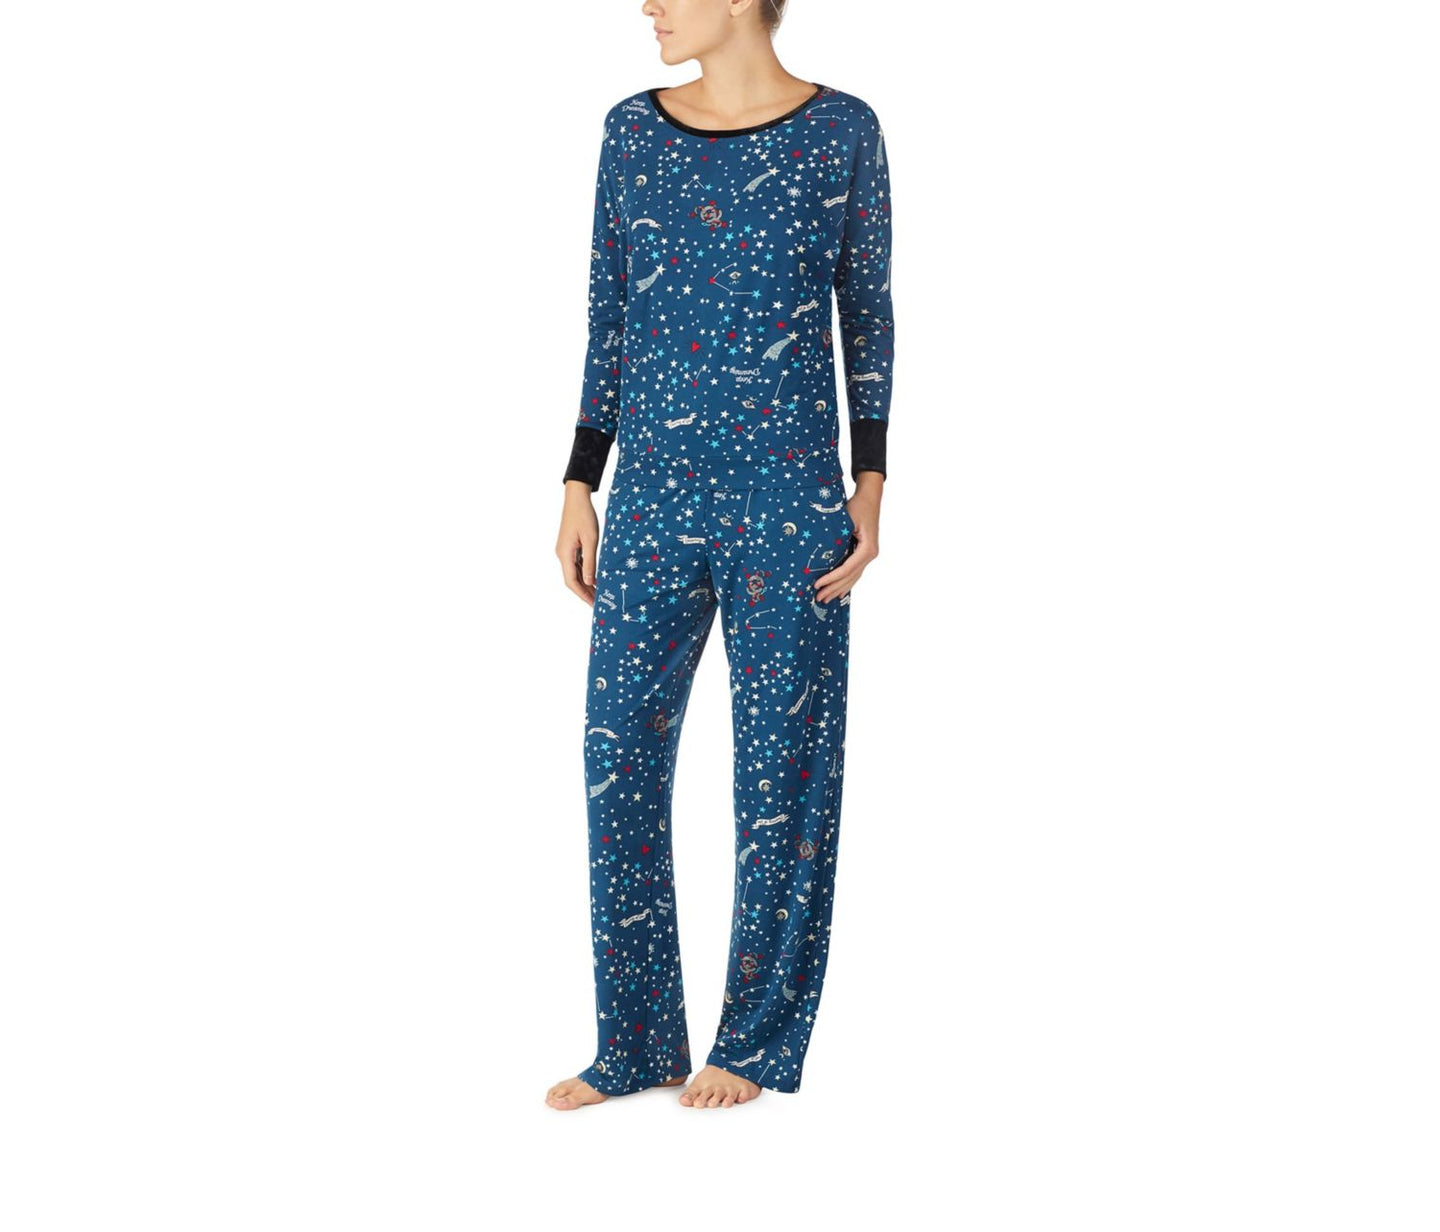 KEEP DREAMING COZY PJ SET NAVY - APPAREL - Betsey Johnson